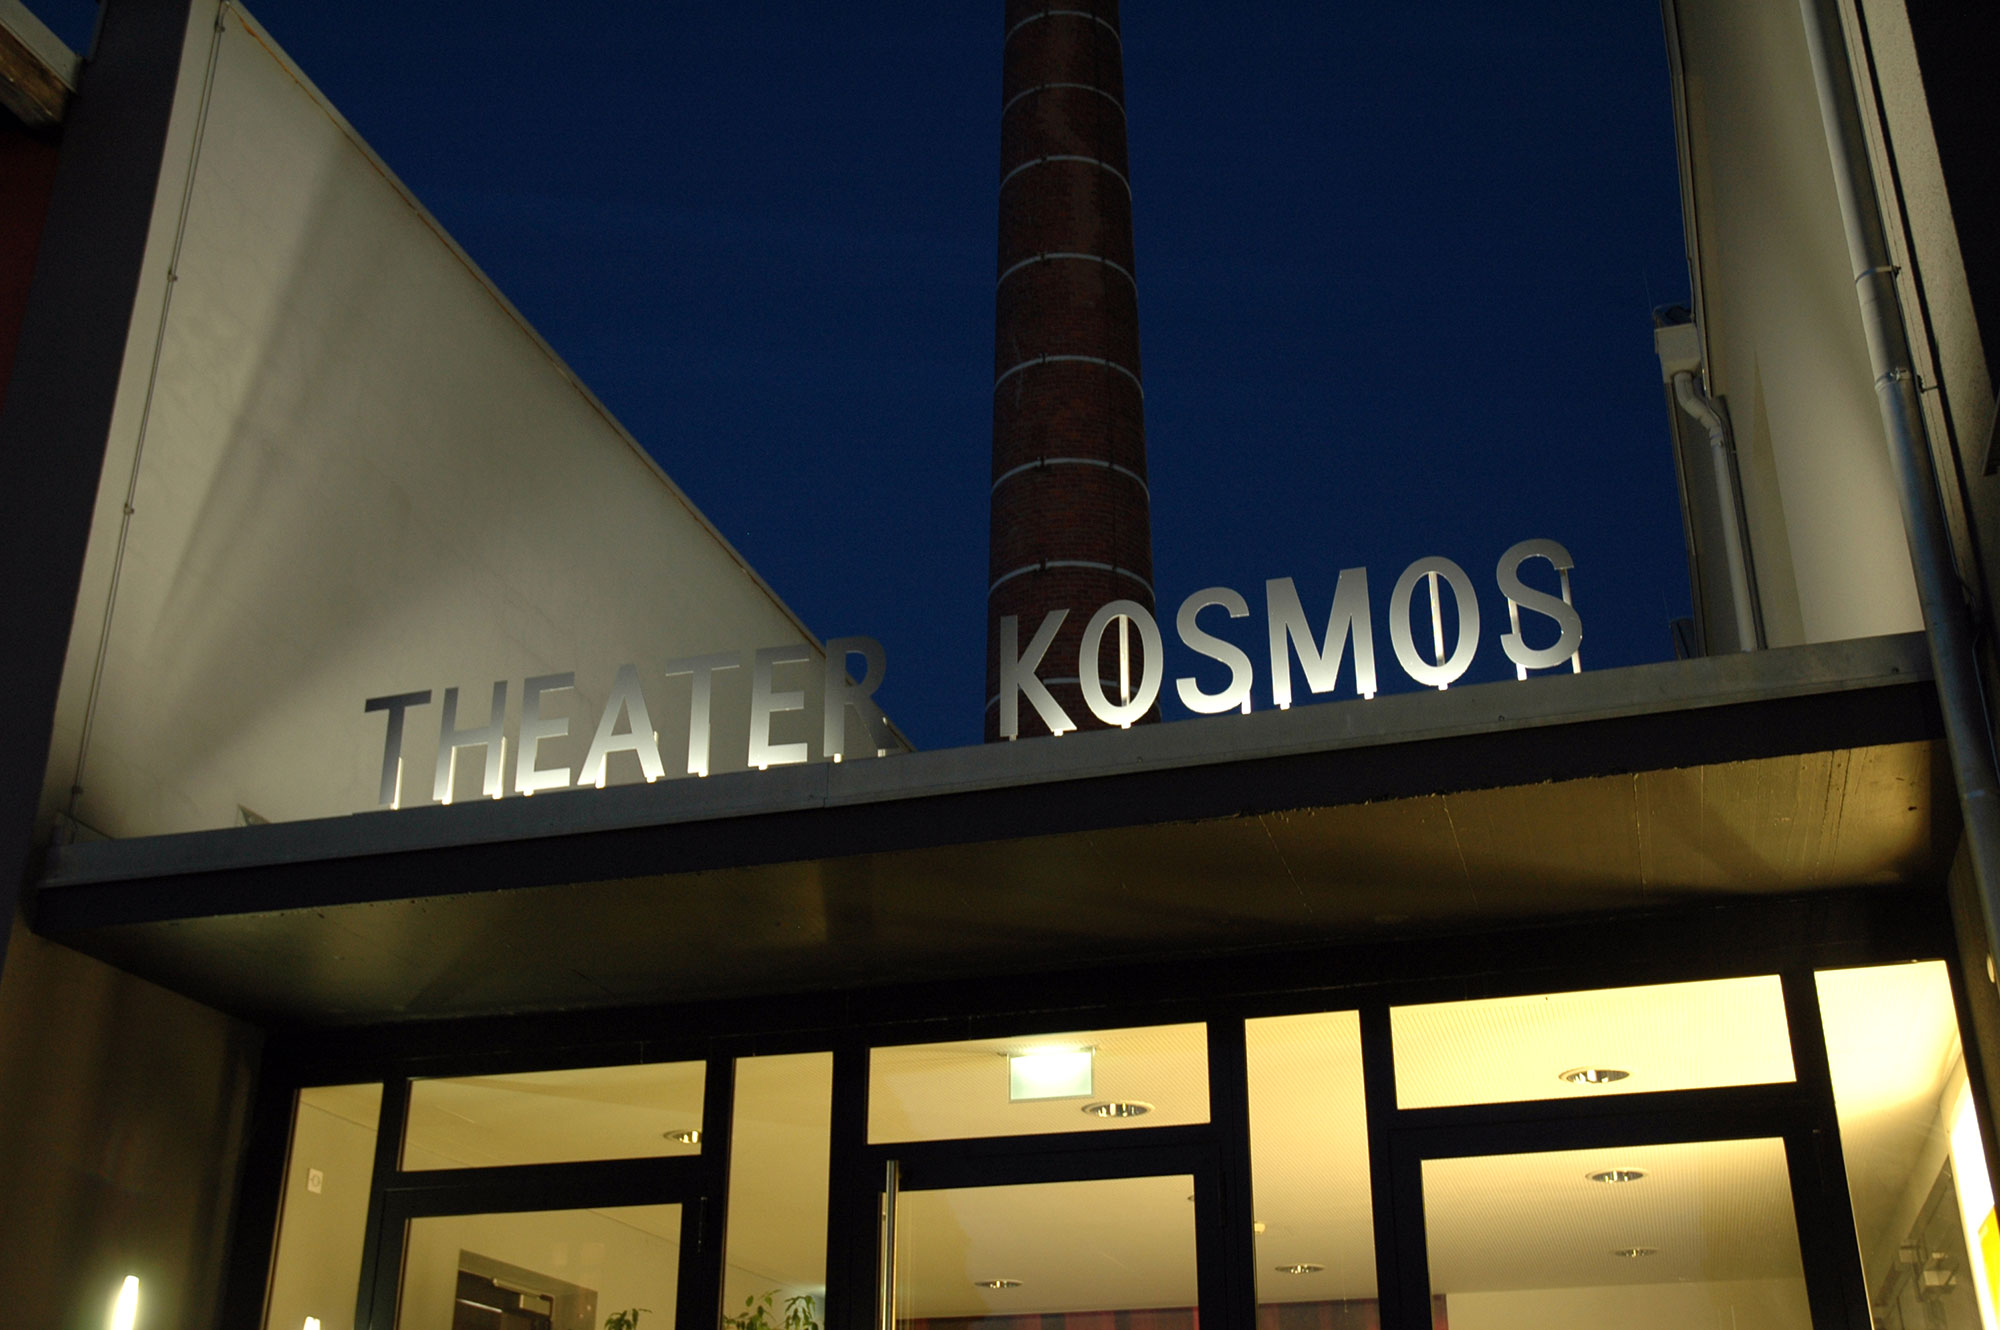 THEATER KOSMOS in Bregenz